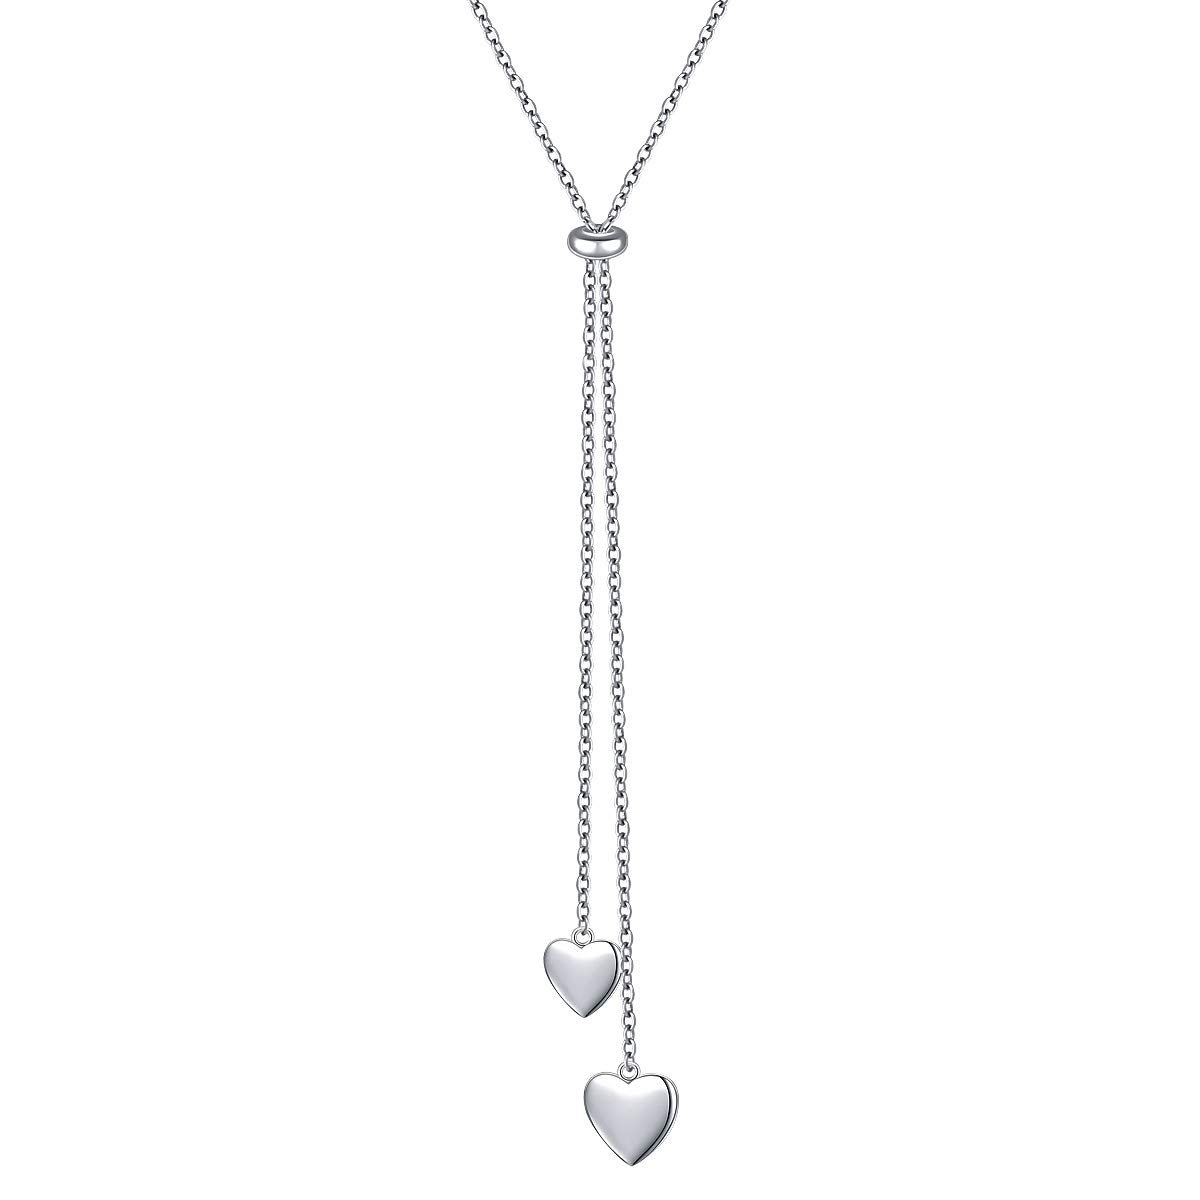 YinShan Long Chain Dainty Necklace Simple Style 925 Sterling Silver Pendant Adjustable Y Shaped Necklace Jewelry (Heart) by YinShan